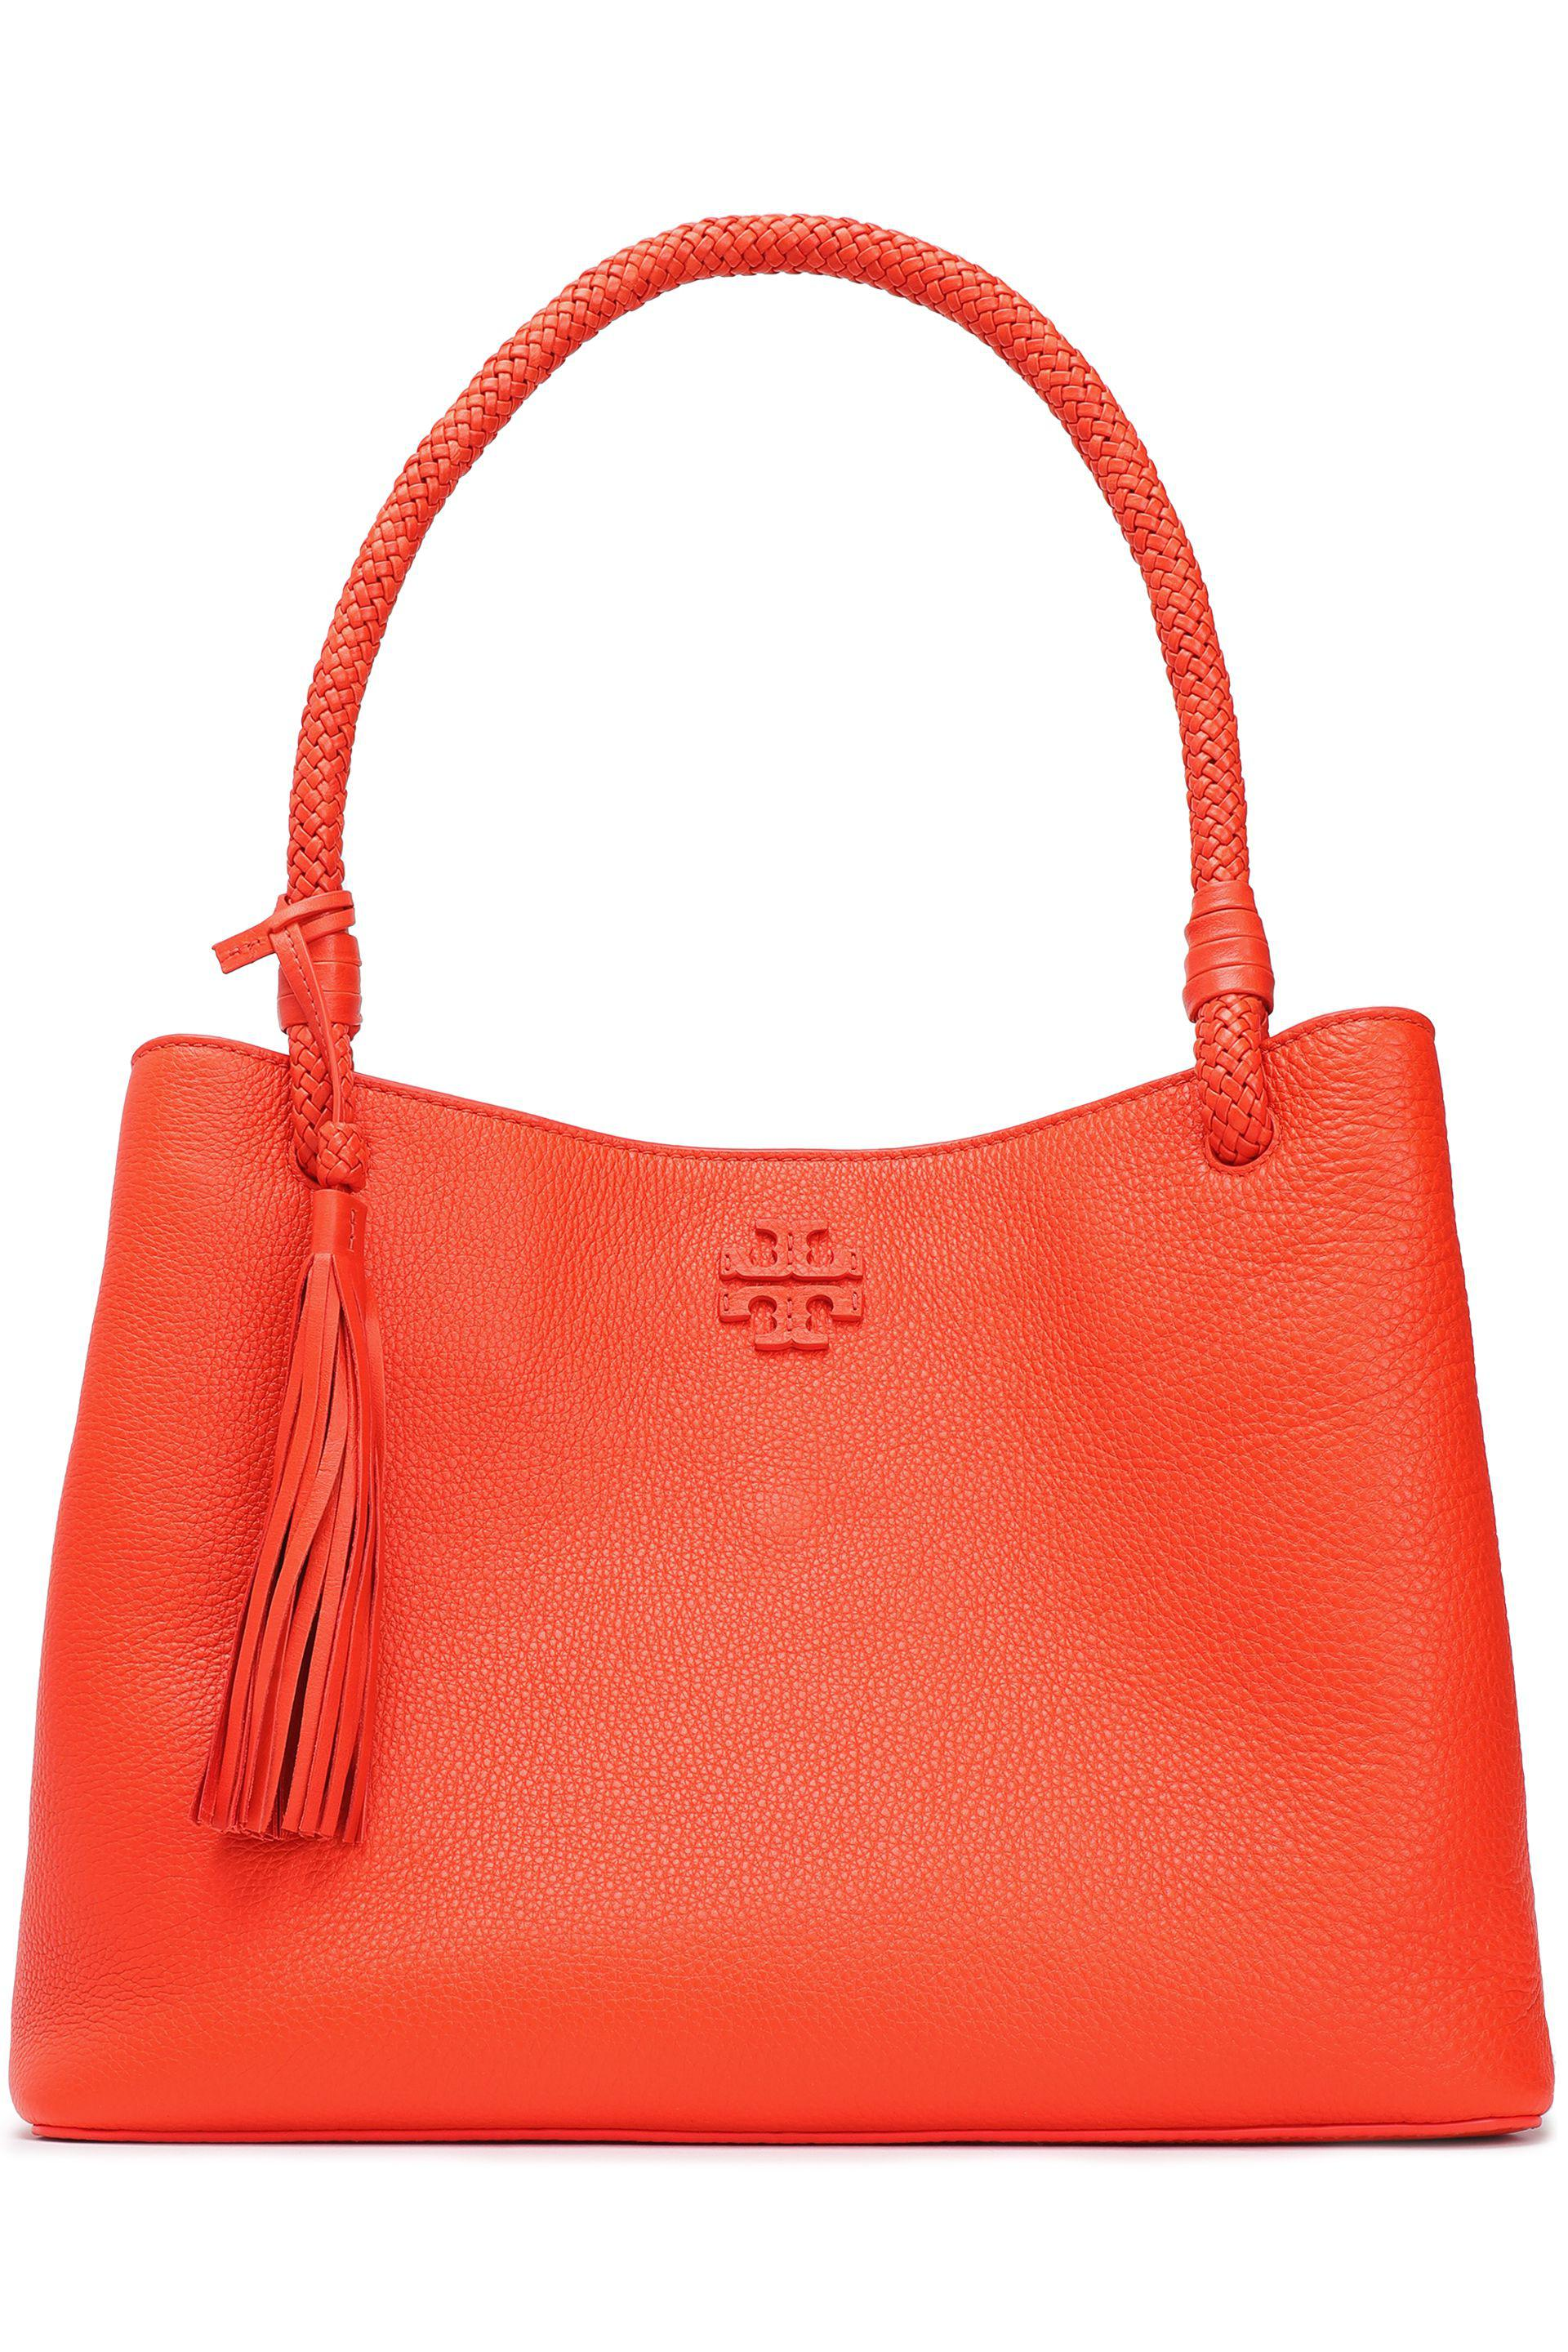 6cf3f9db1e0d switzerland tory burch taylor textured leather shoulder bag in orange lyst  a6bd7 79dcd